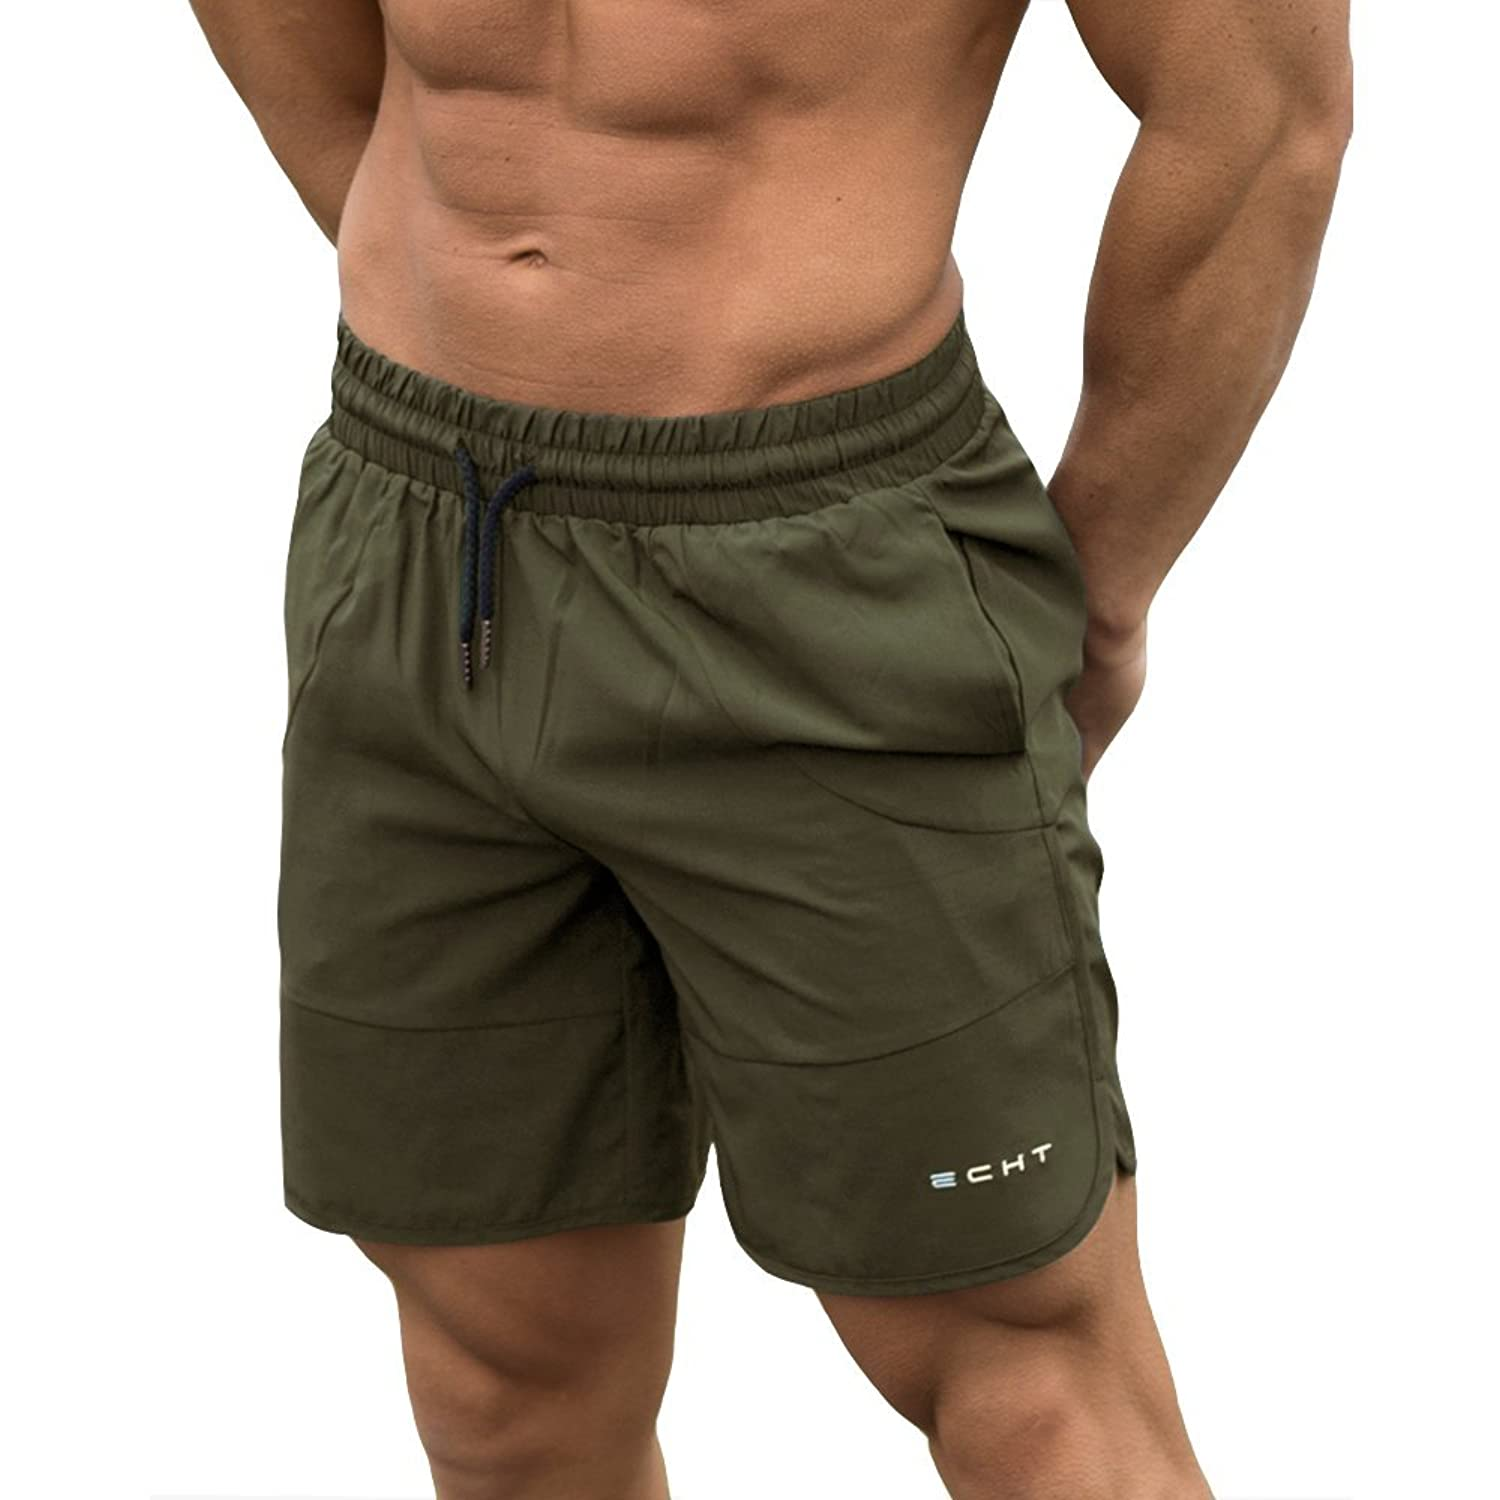 169c391561be4 All items in store are Genuine ECHT Apparel. - 100% Quick Dry Polyester  Based Fabrication. Added Stretch for High Intensity Workouts